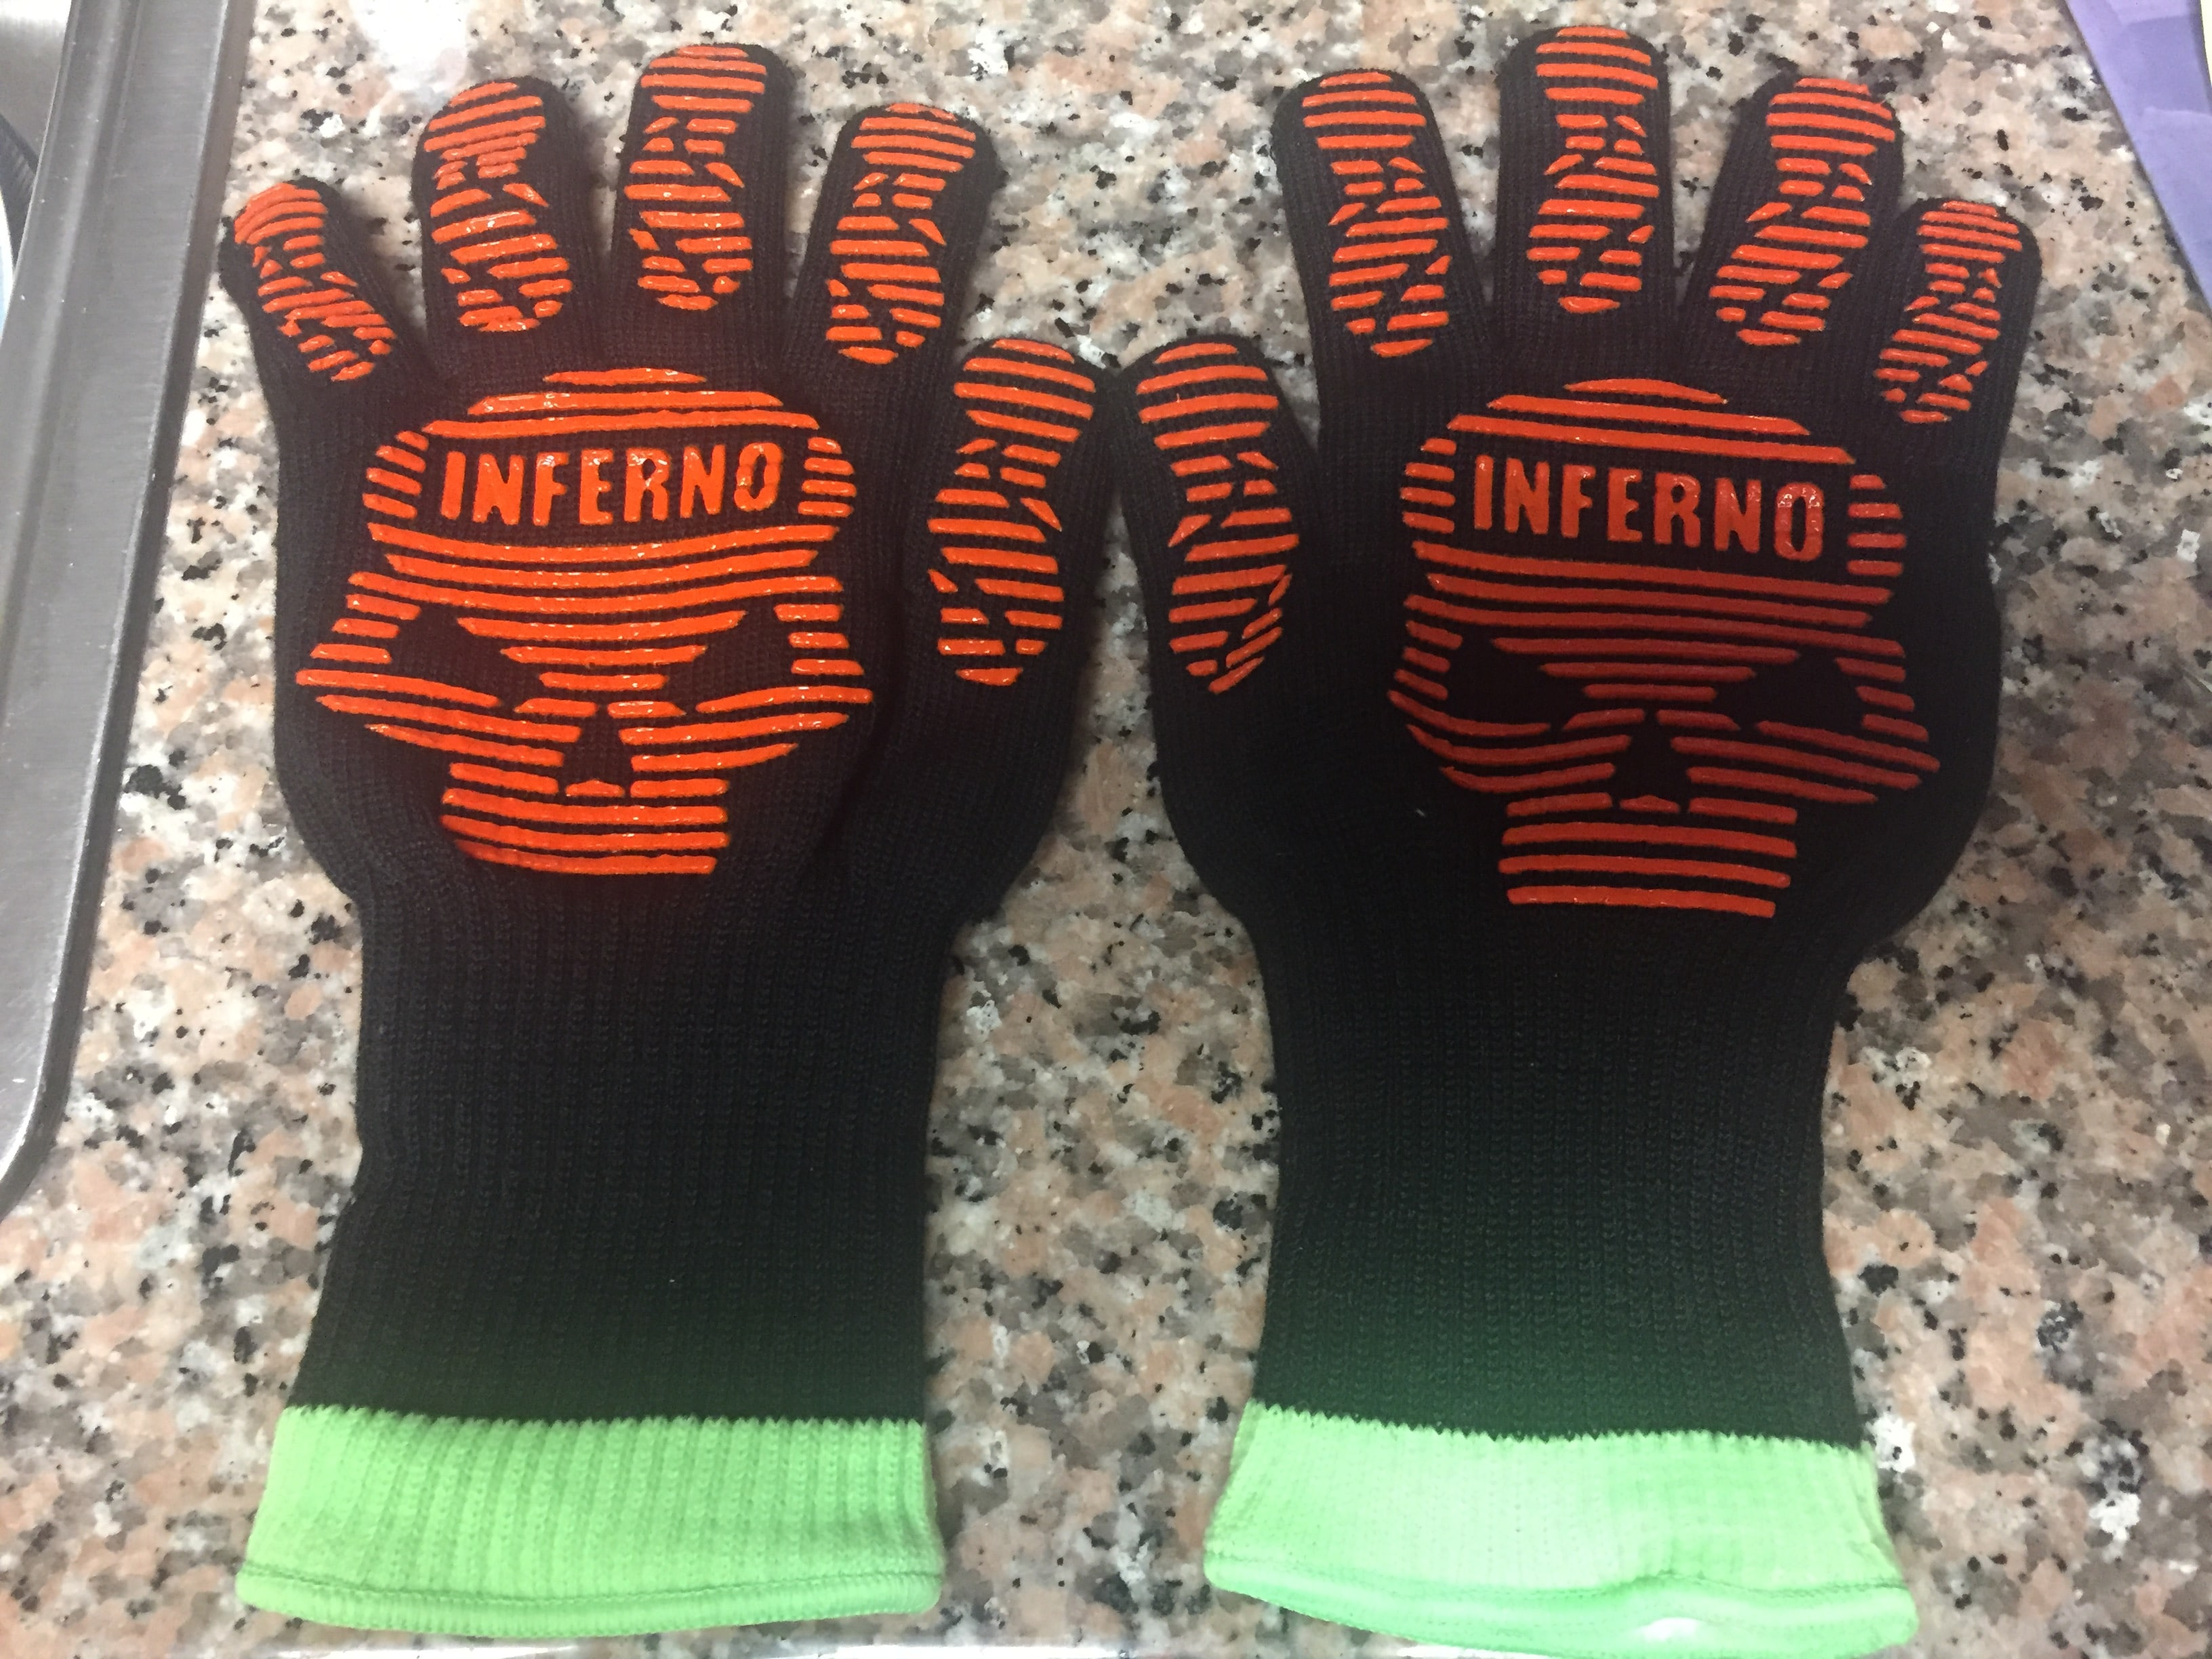 Heat Resistant Barbecue Gloves, Kitchenux Brand Inferno-IBG-L Grill Gloves